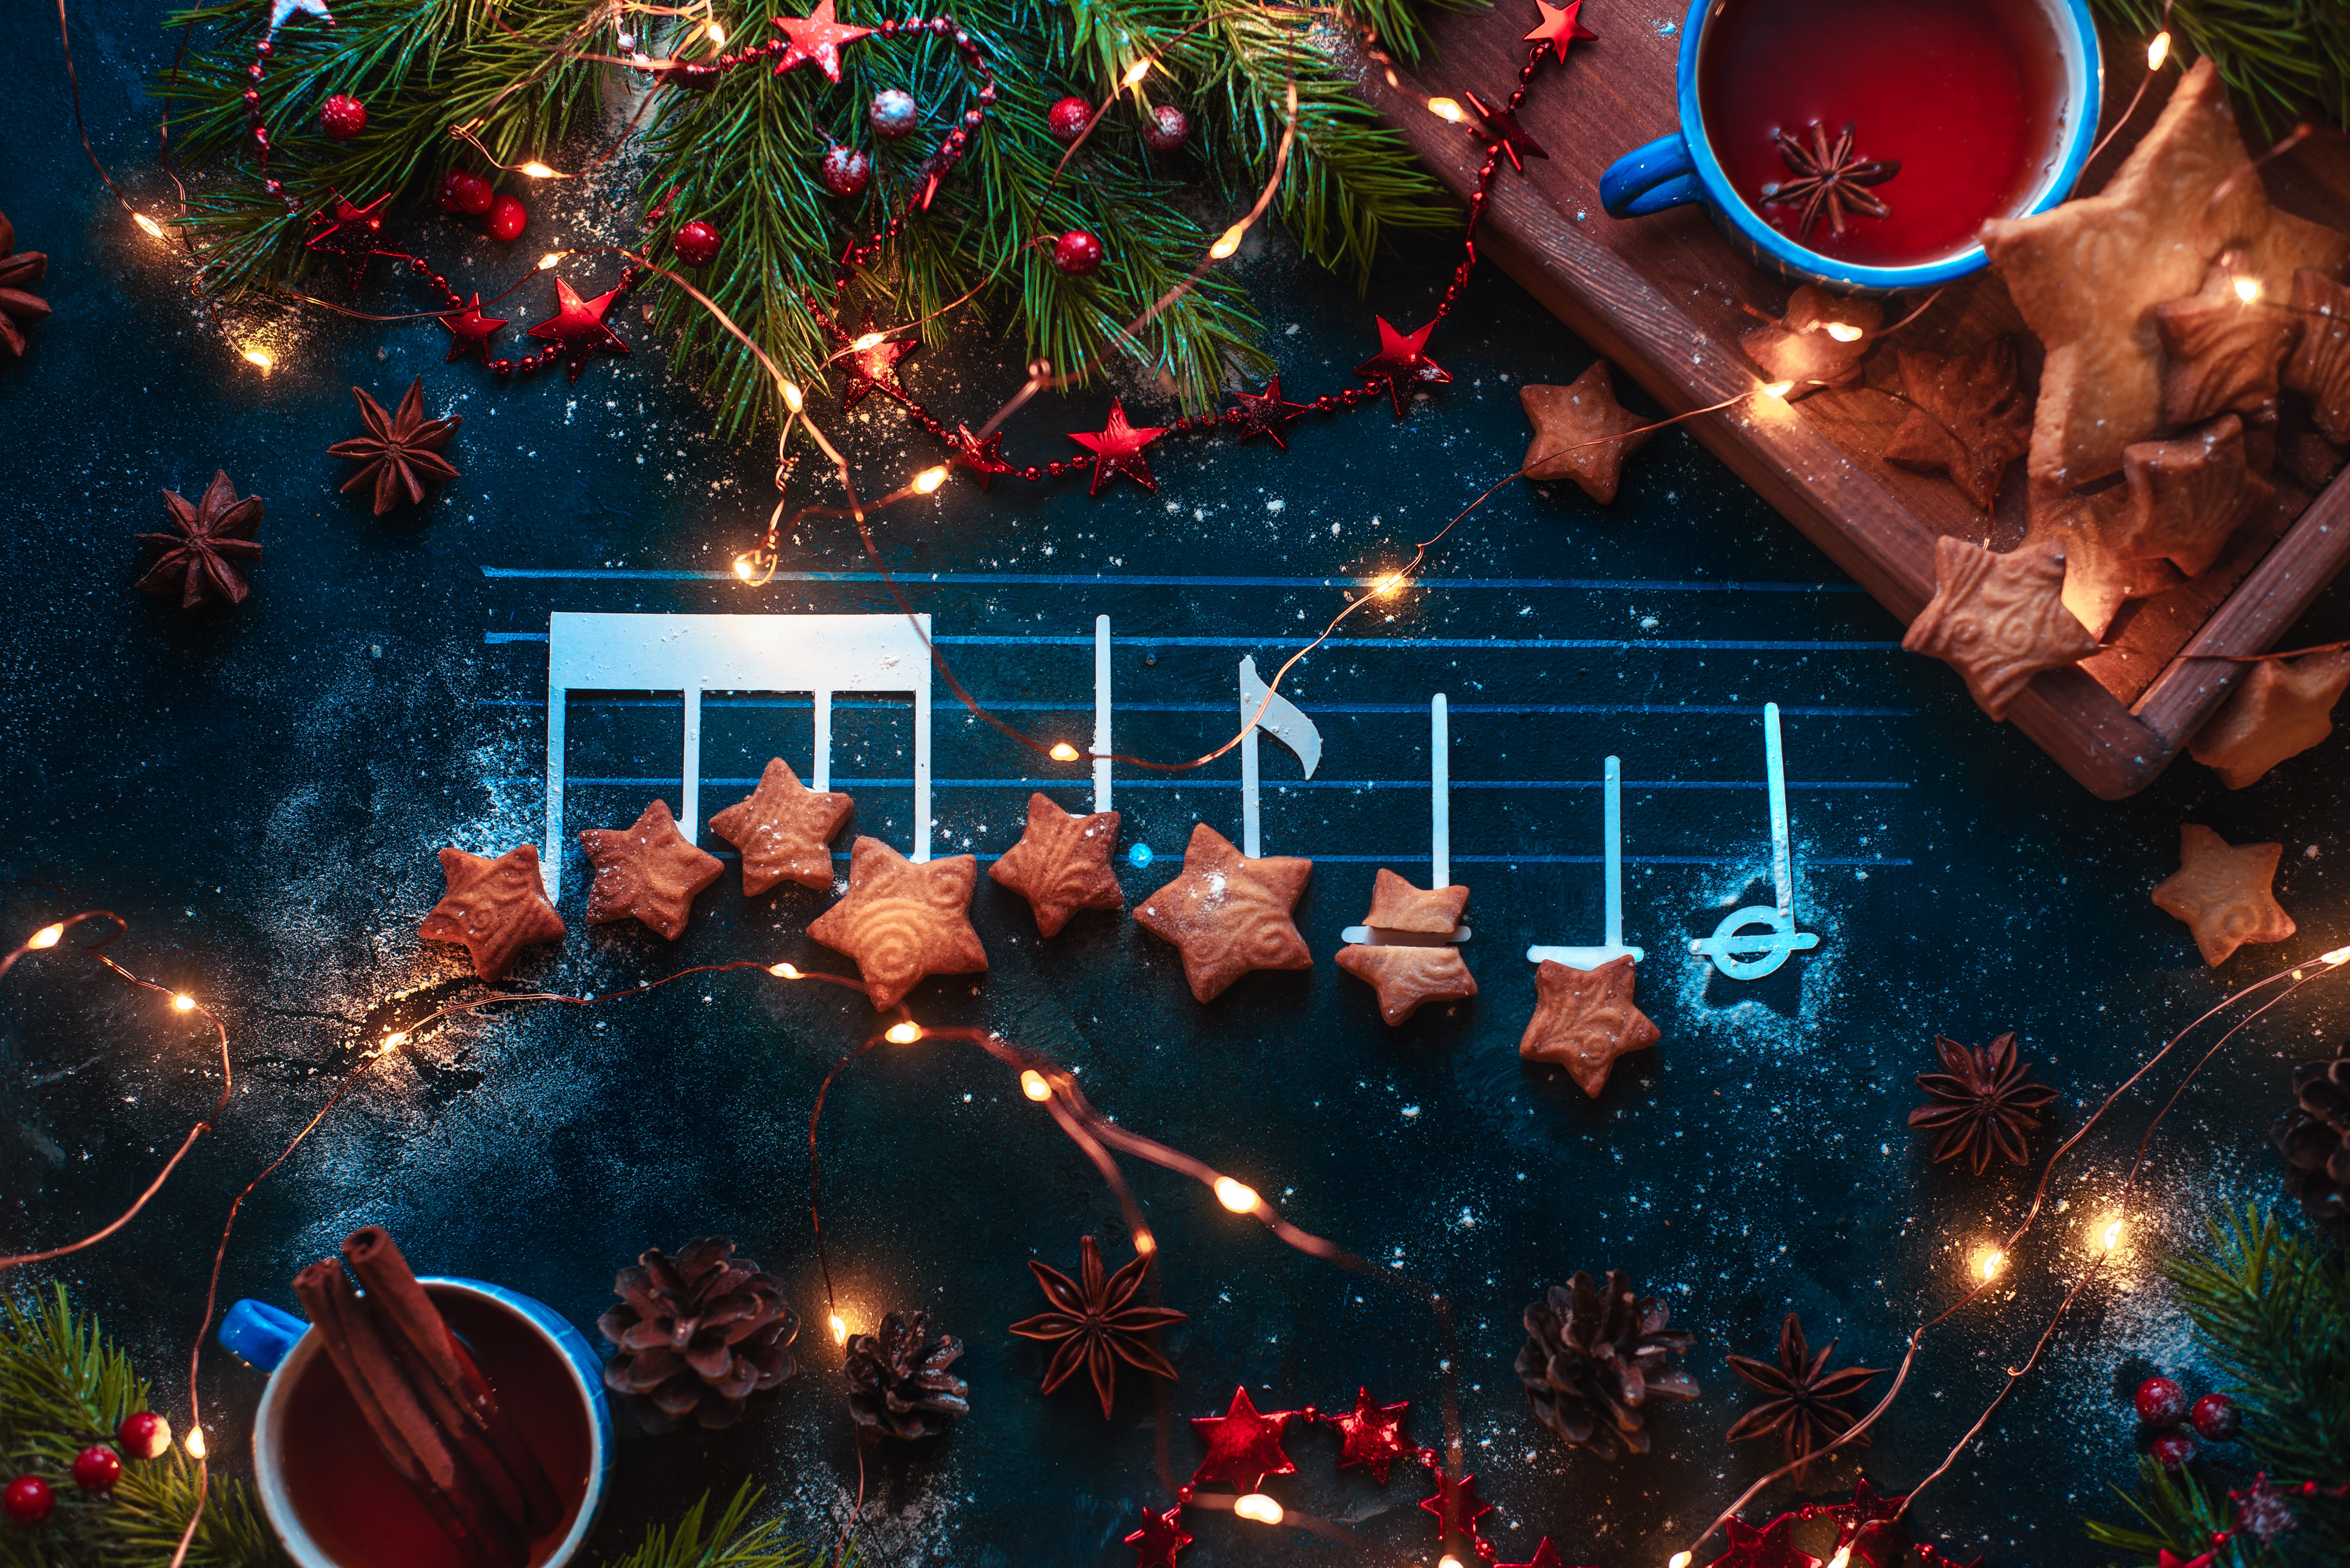 Christmas melody notes flat lay with star-shaped cookies, fir tree branches, wooden tray, anise stars, and decorations. Christmas carol concept for a header or postcard